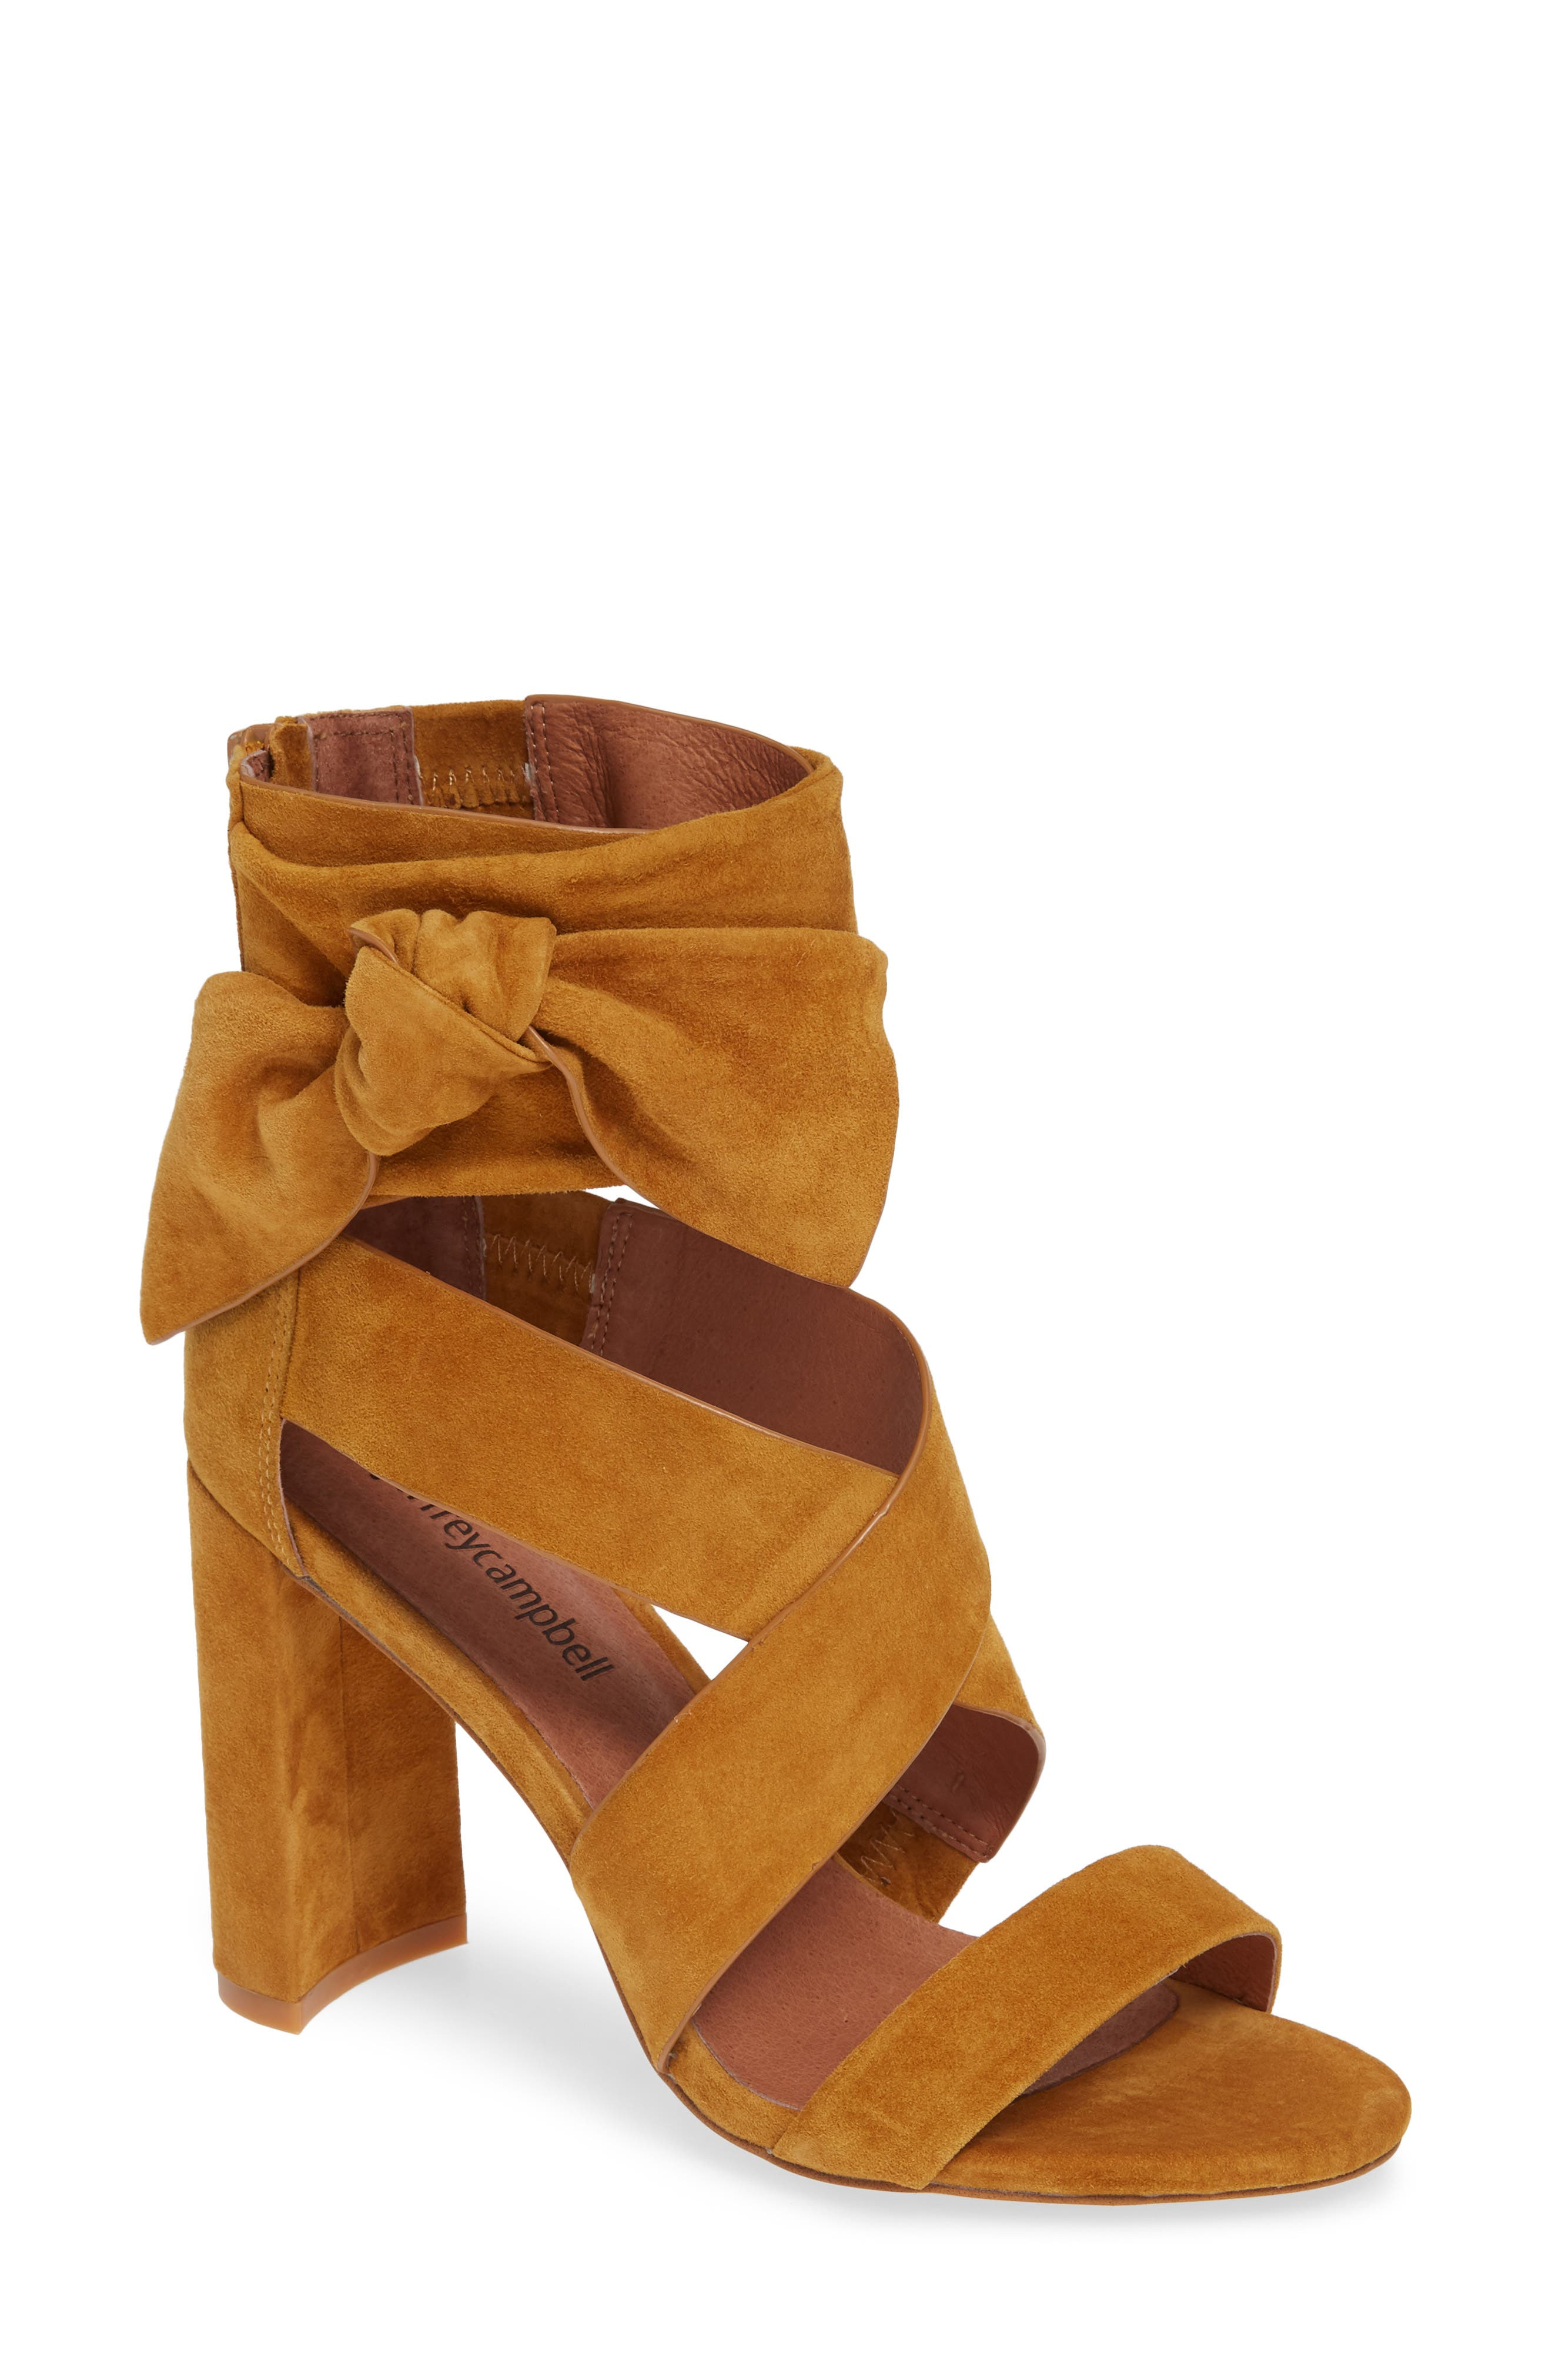 Despoina Sandal,                         Main,                         color, 722